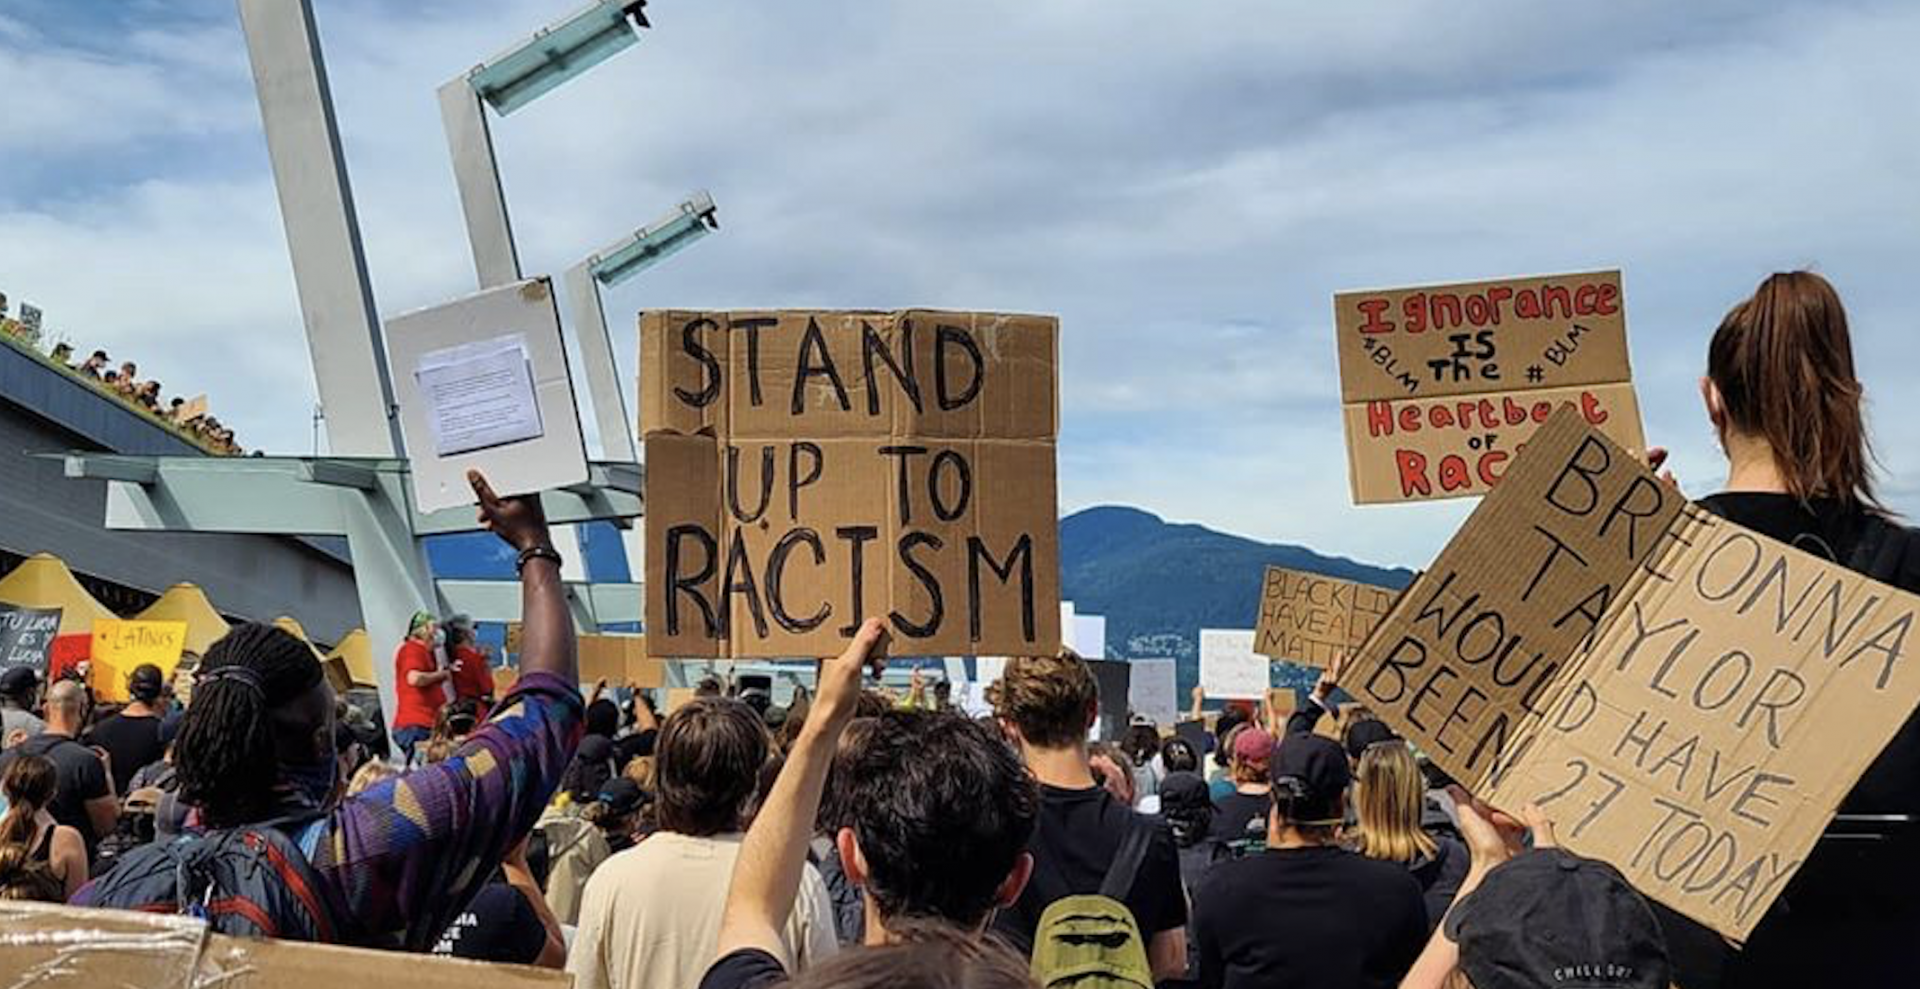 Thousands take stand against racism at massive Vancouver protest (PHOTOS)